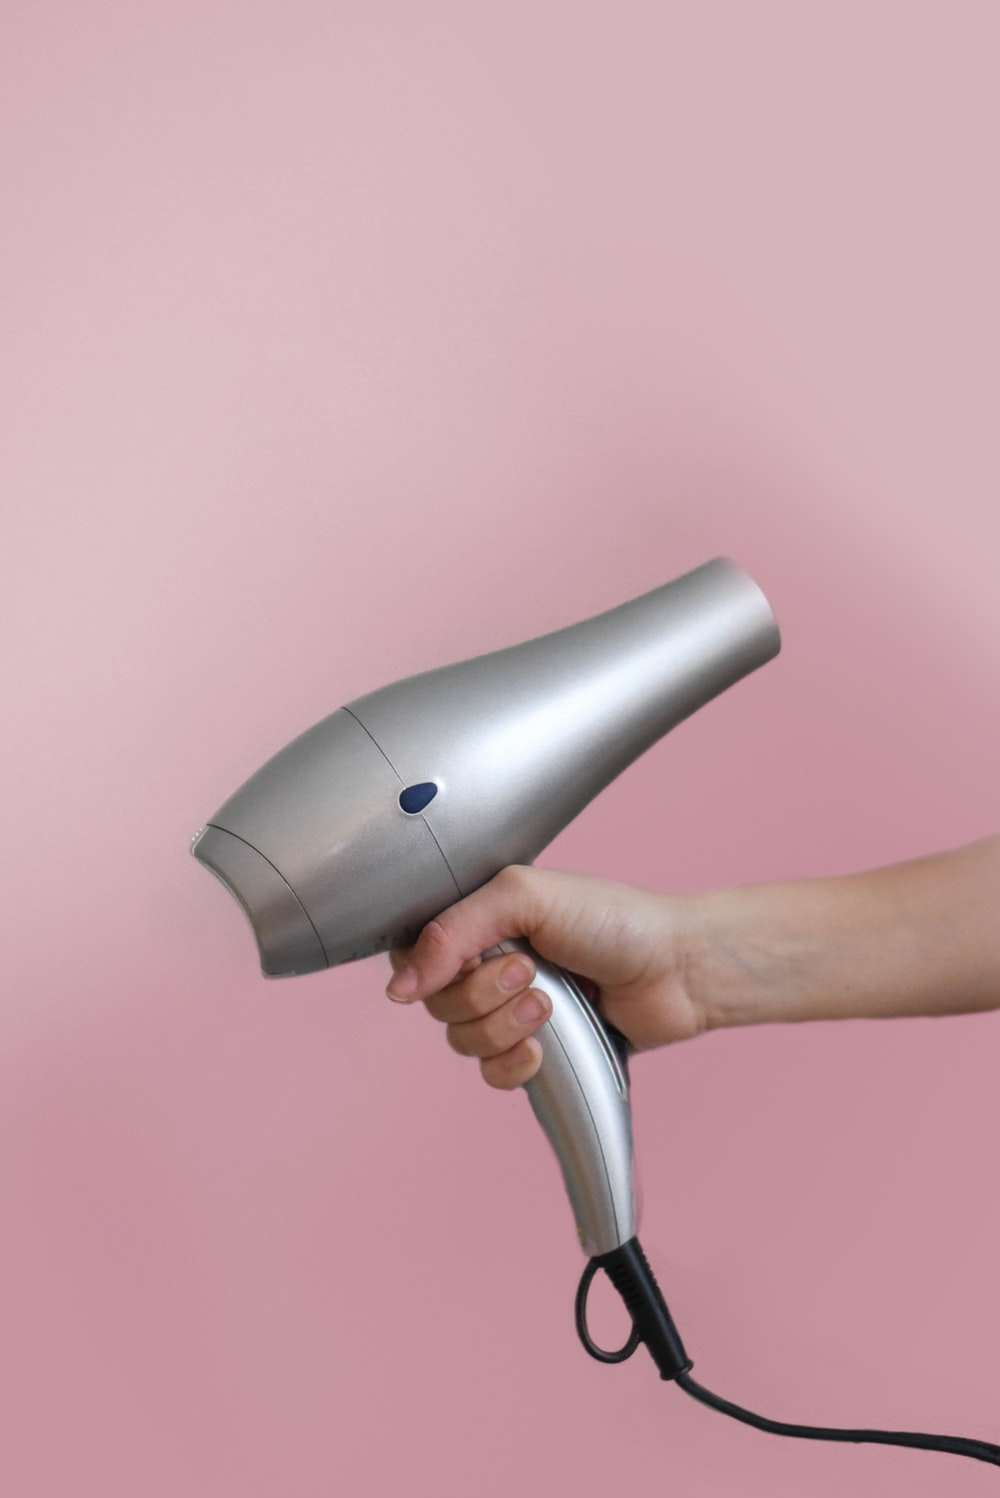 person holding gray corded hair dryer